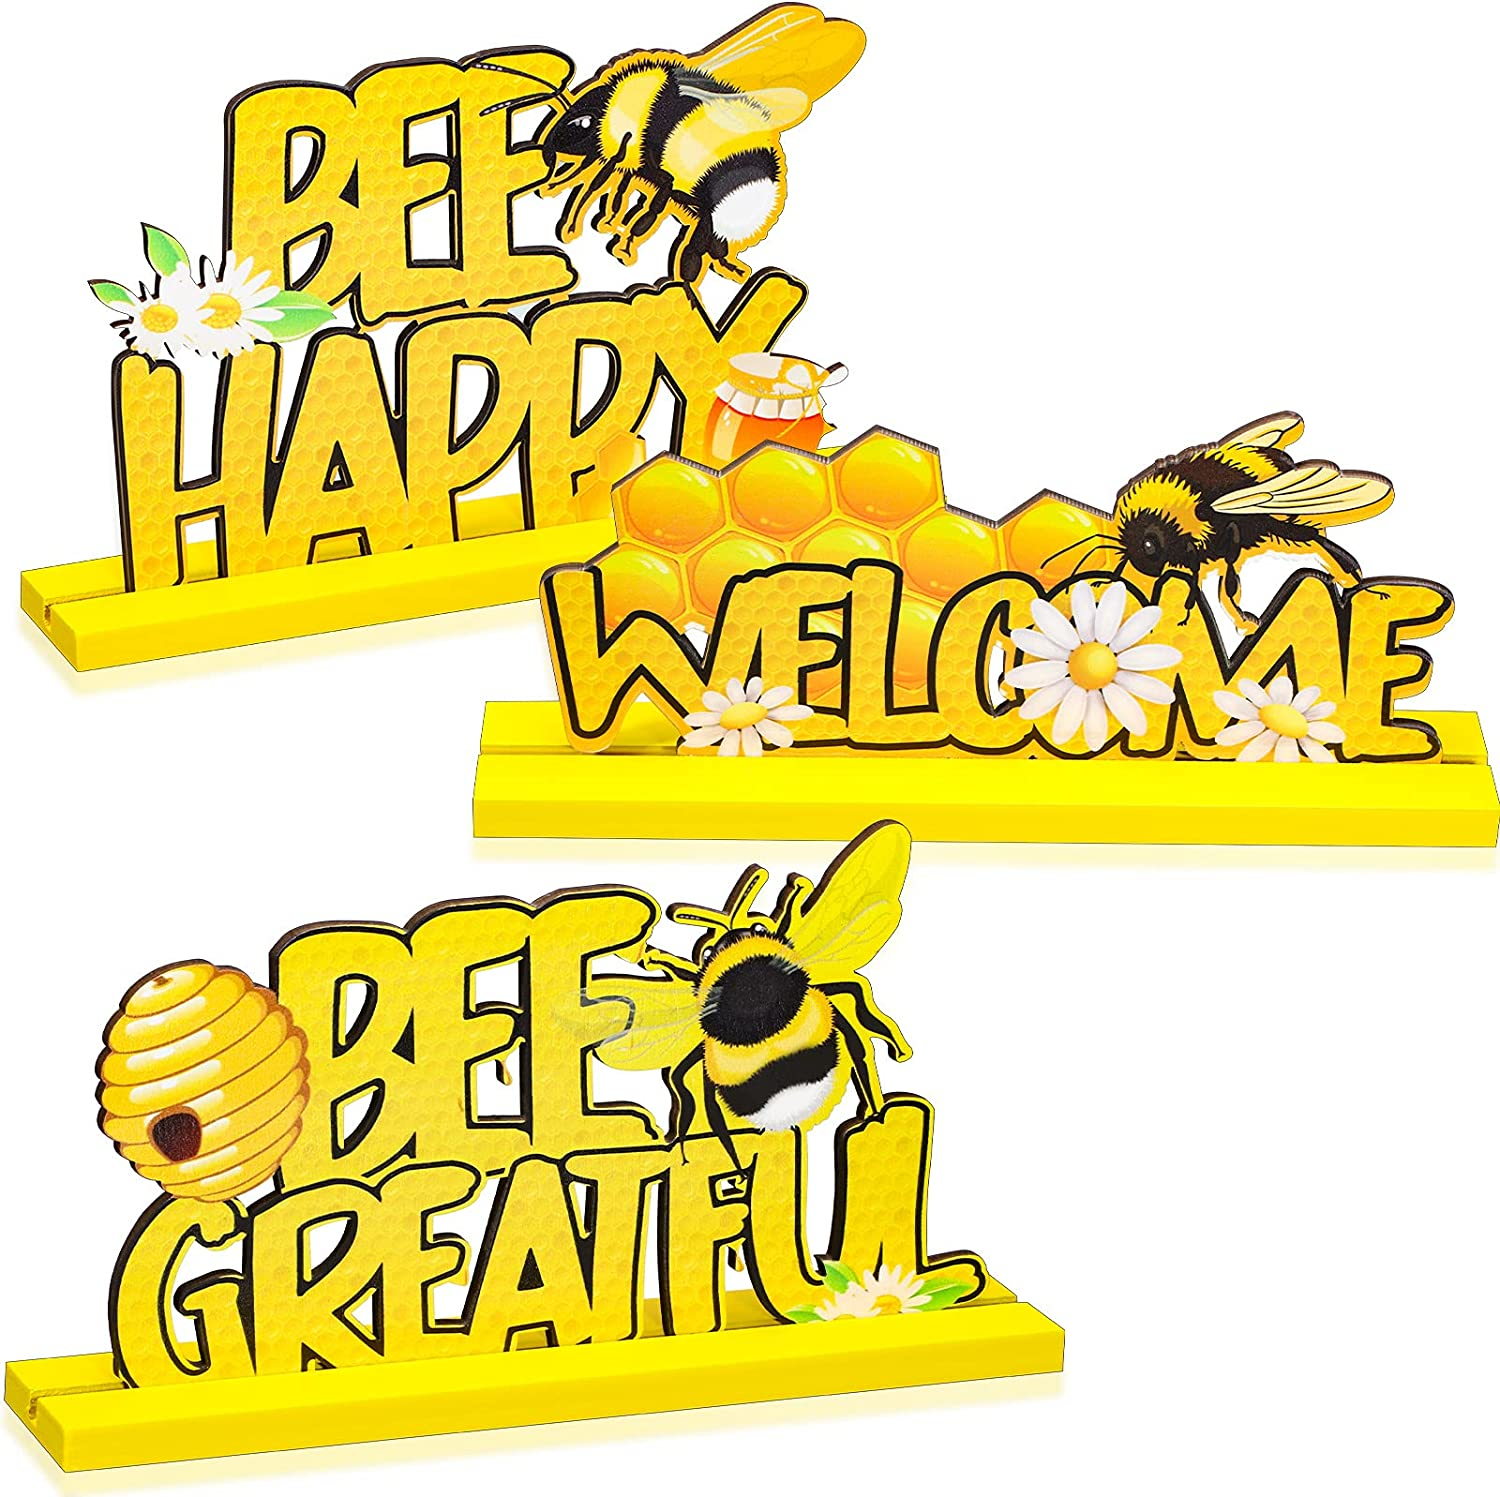 3 Pieces Bee Table Decor Signs Wooden Table Decoration Welcome Table Topper Bee Centerpiece for Home Outdoor Garden